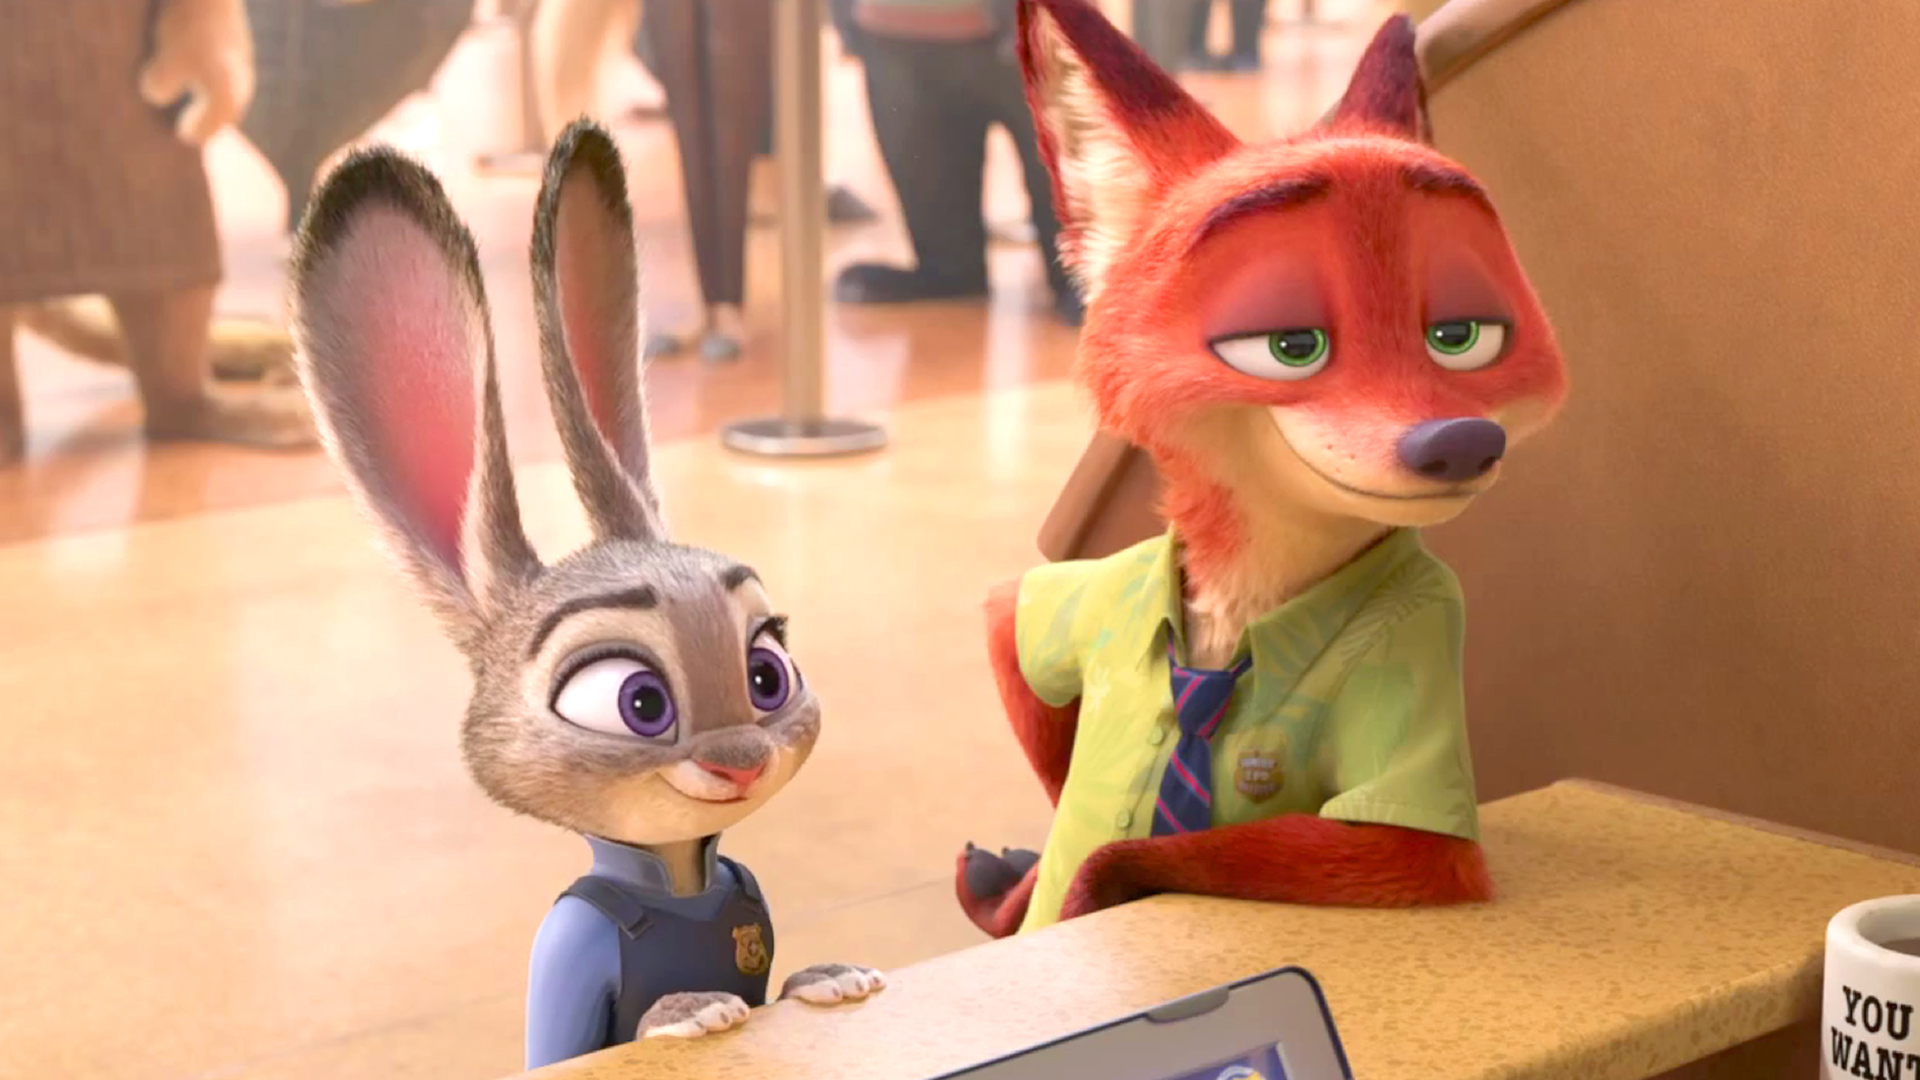 43 Zootopia Hd Wallpaper On Wallpapersafari